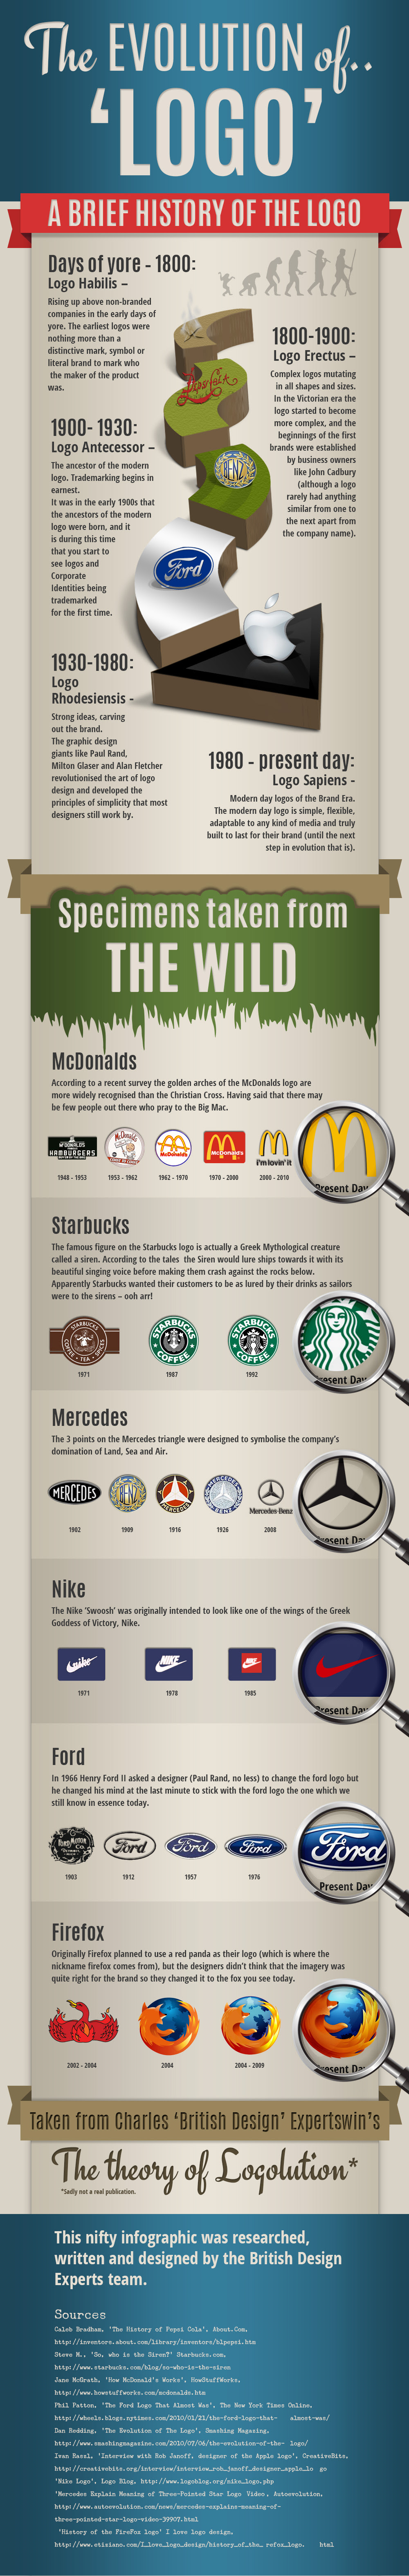 History of the Logo Design | Visual.ly